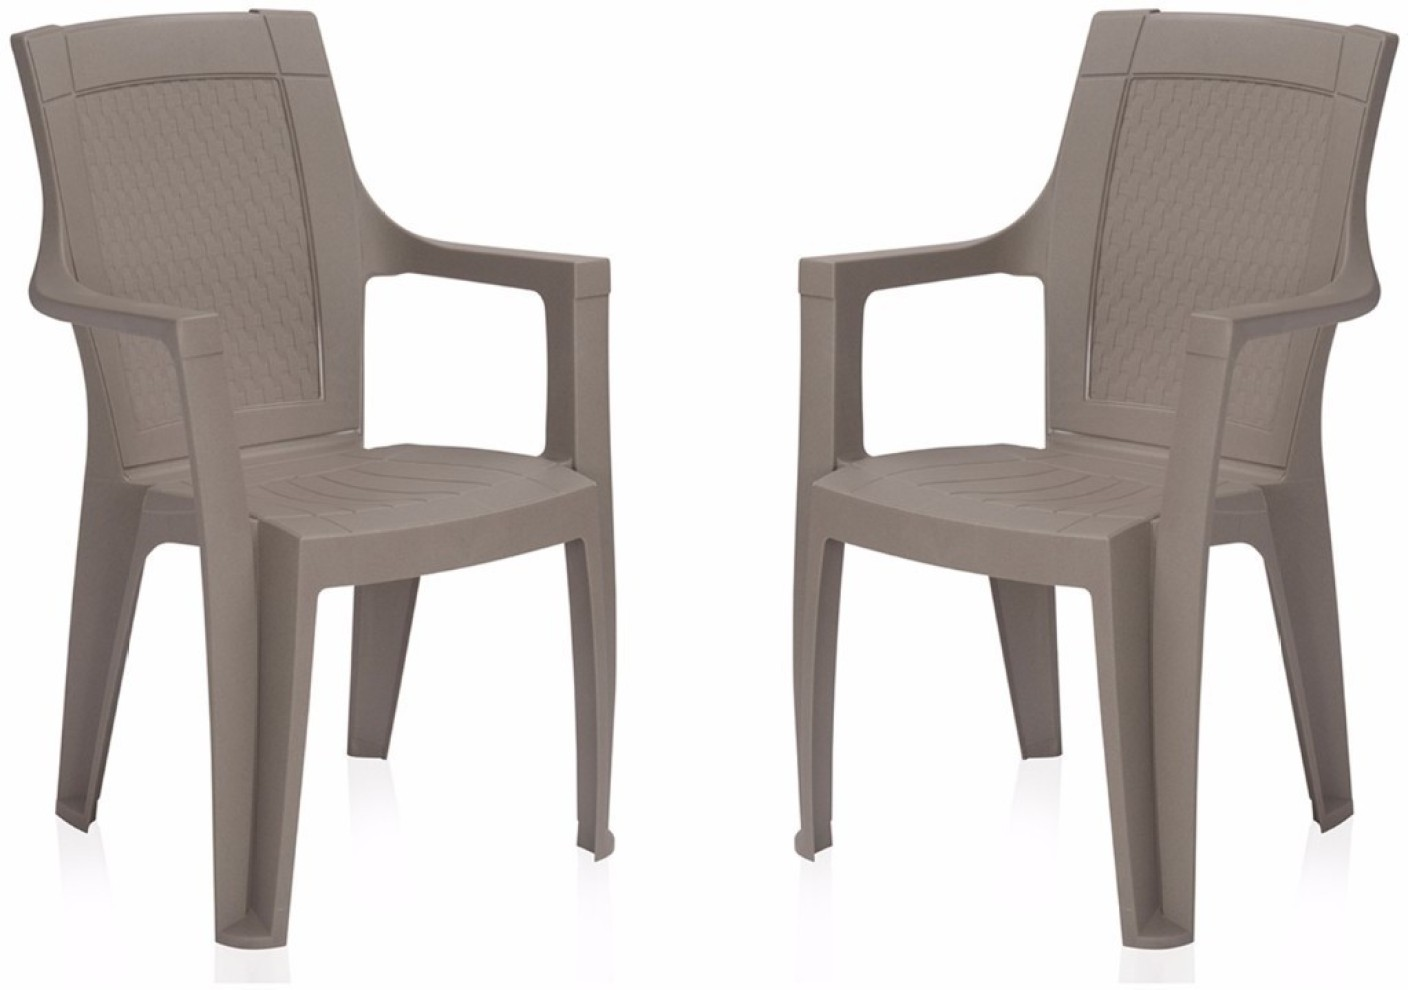 100 Buy Nilkamal Chairs Online India Buy Nilkamal  : pp flocrosakit2stb nilkamal na original imaesz8rmeffbzzm from mitzissister.com size 1408 x 990 jpeg 106kB